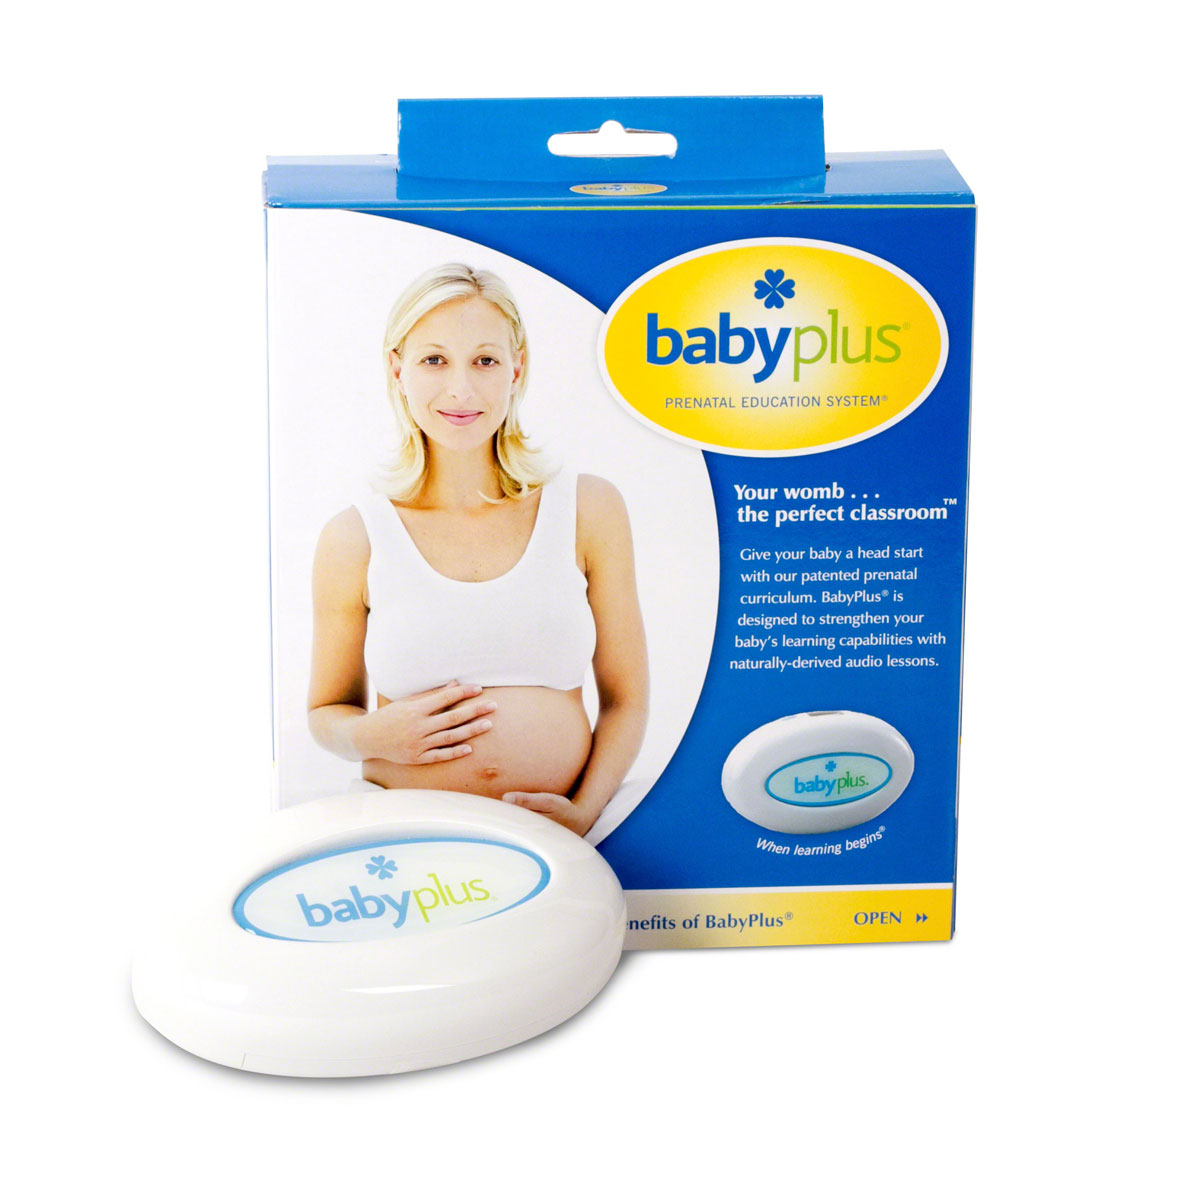 BabyPlus Prenatal Education System